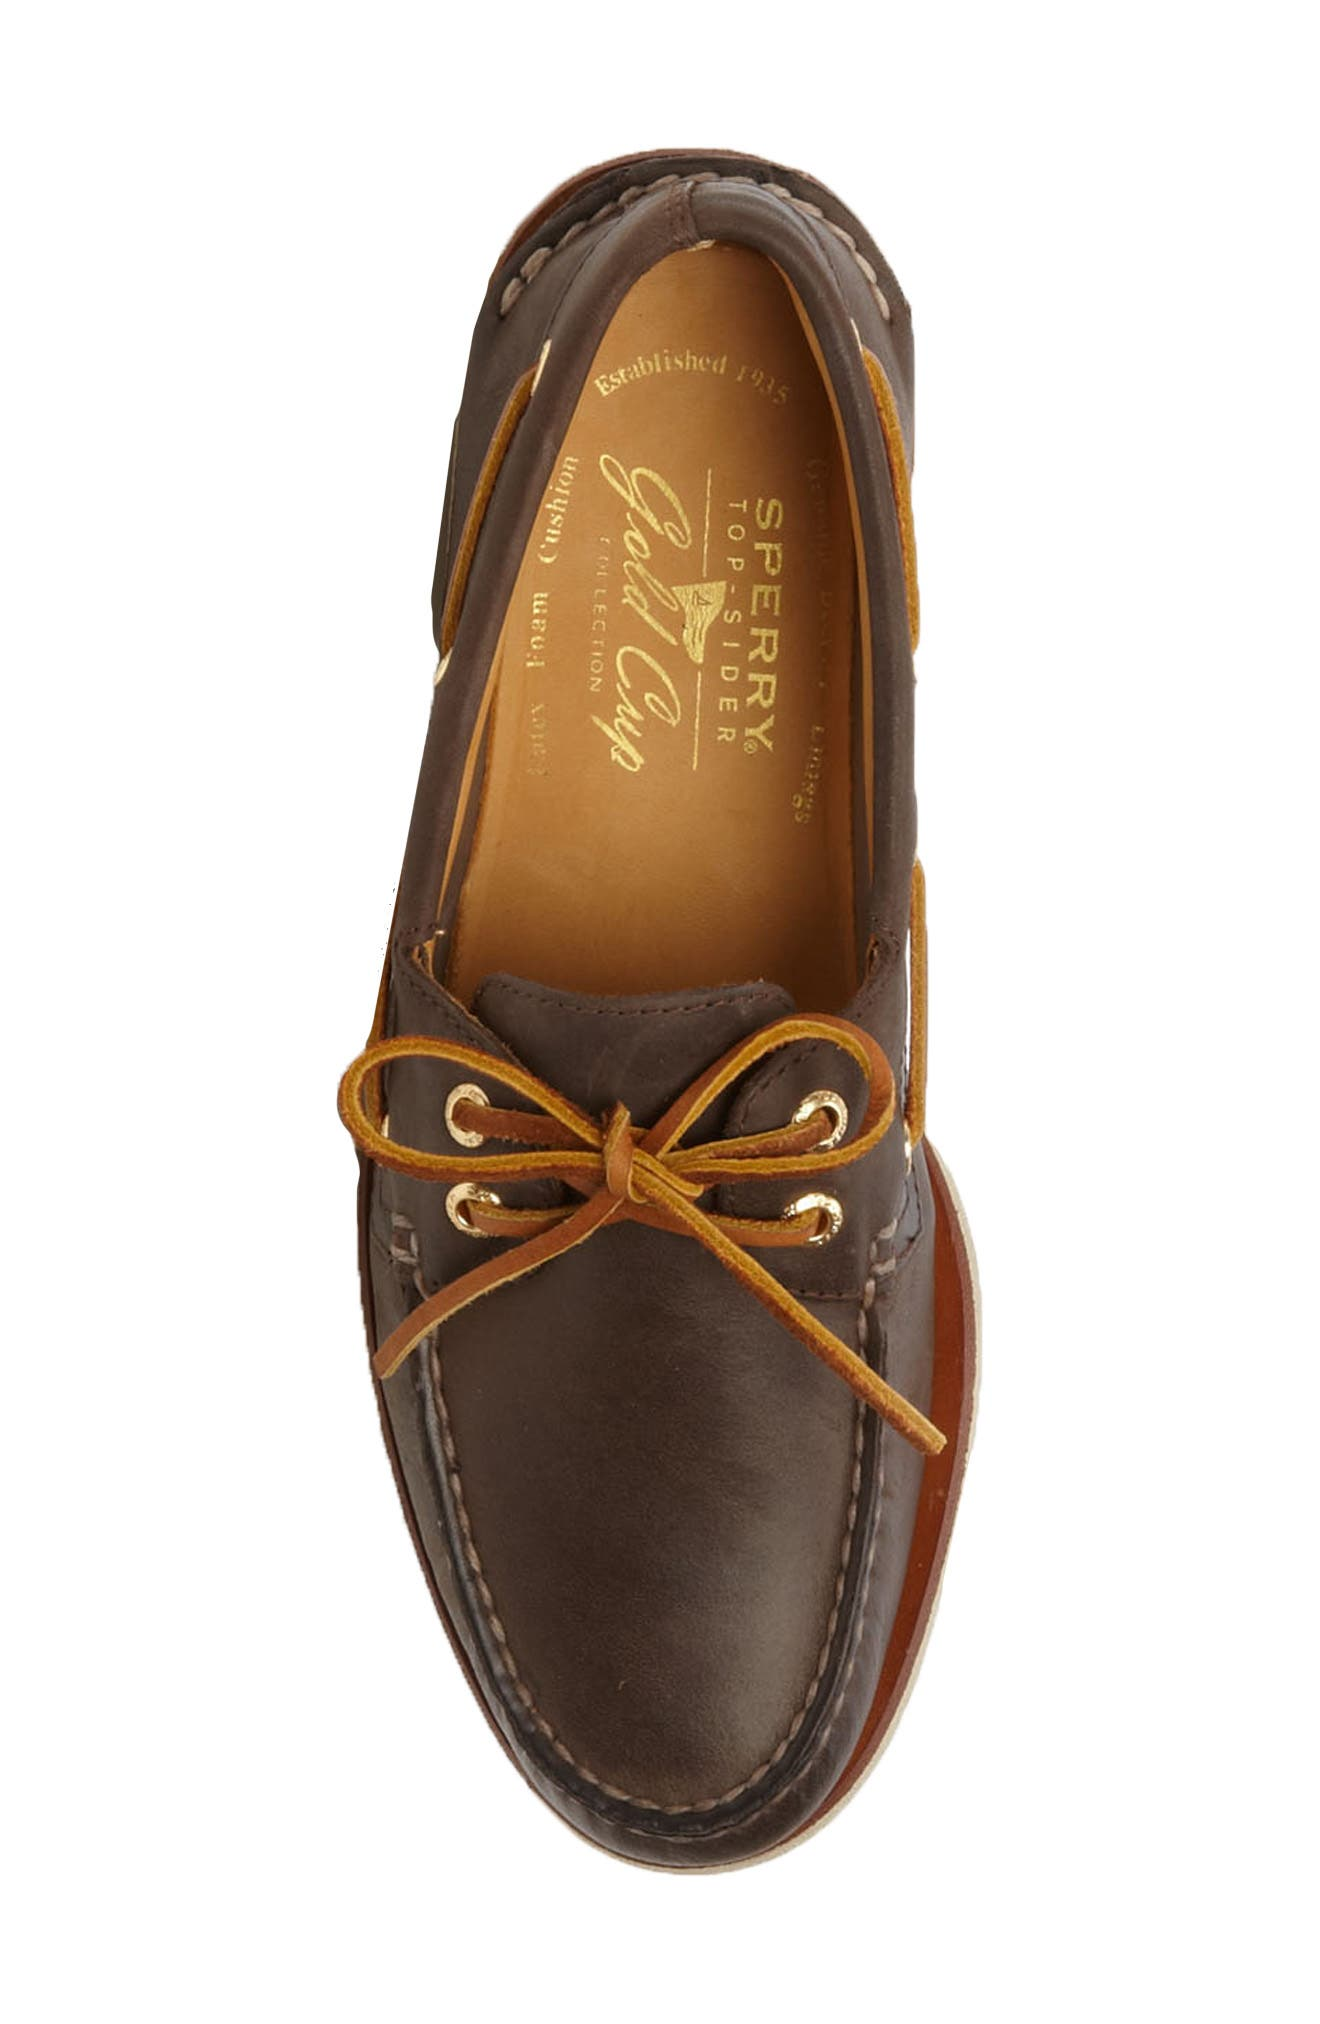 'Gold Cup - Authentic Original' Boat Shoe,                             Alternate thumbnail 3, color,                             DARK BROWN LEATHER